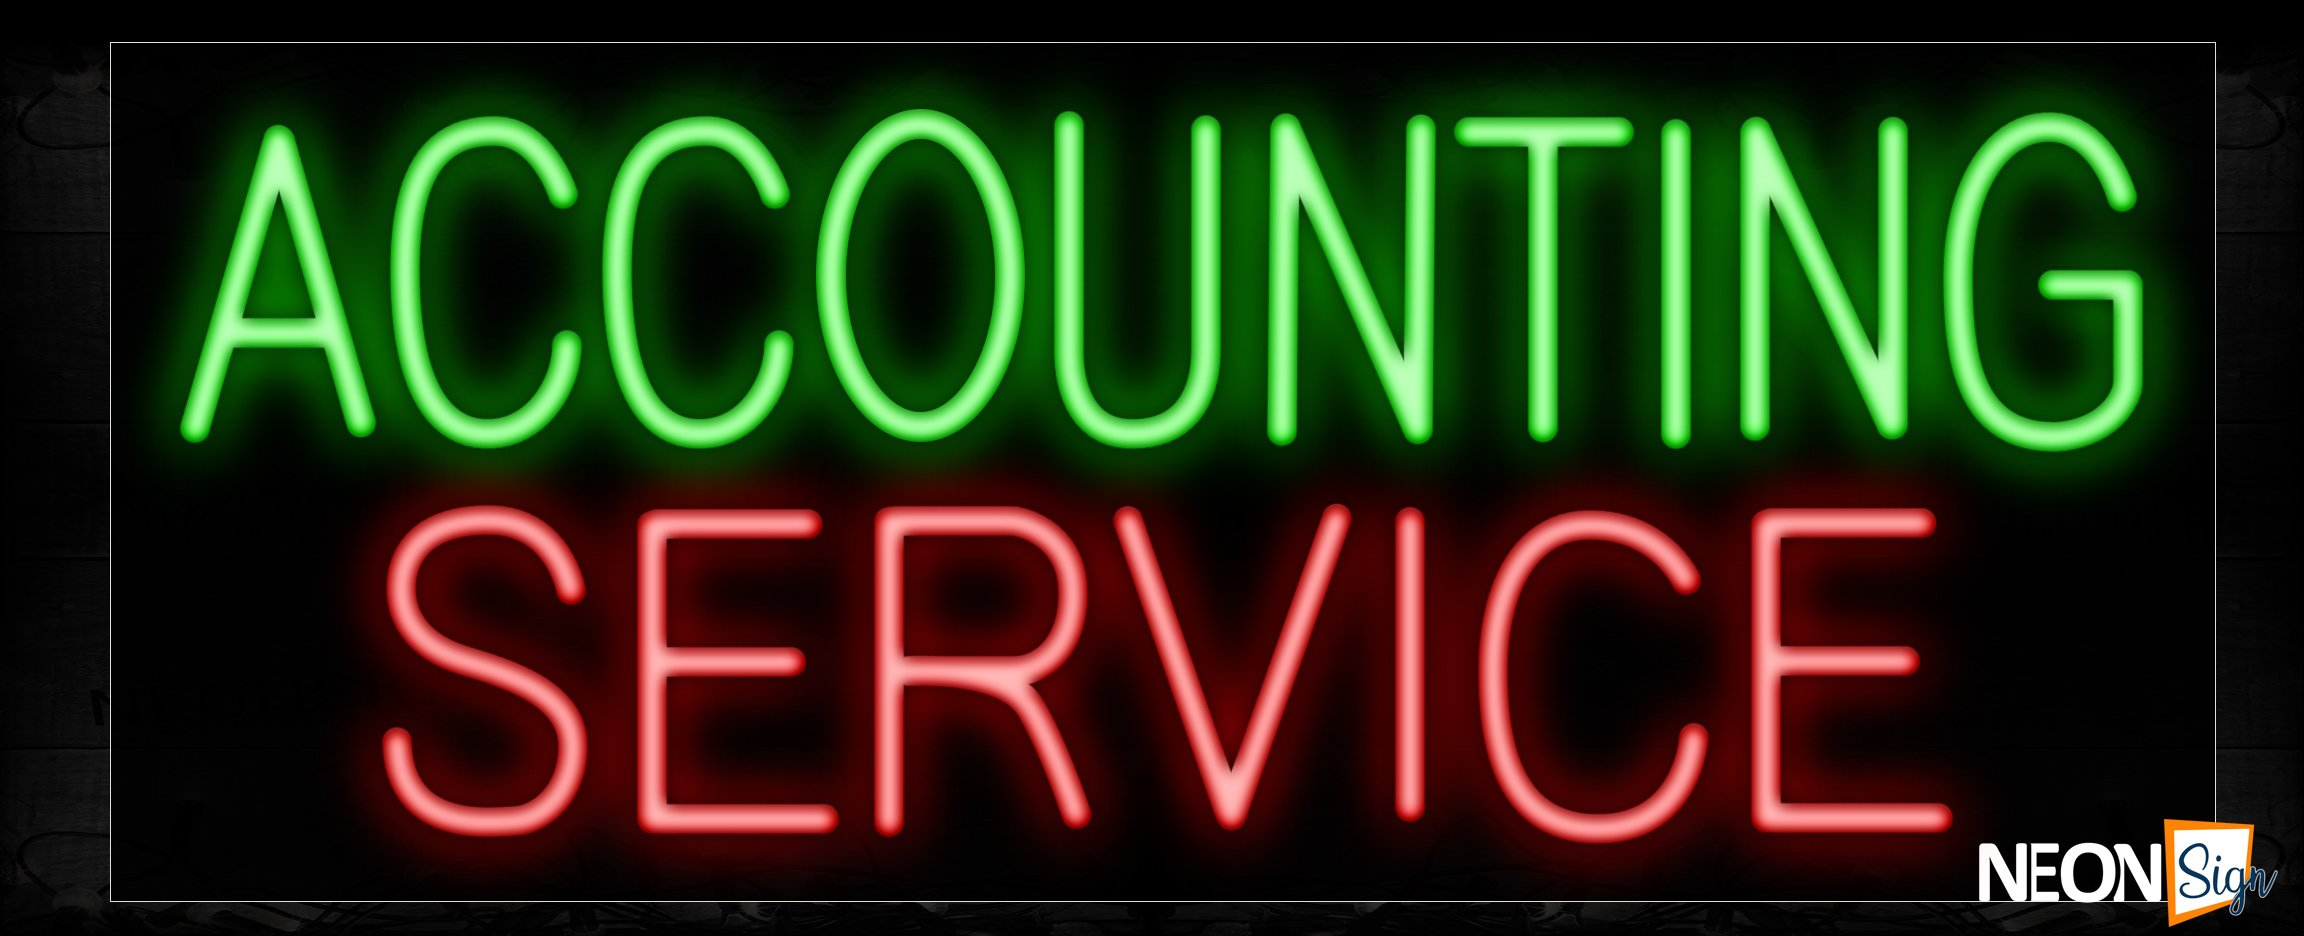 Image of 11345 Accounting Service Neon Sign_13x32 Black Backing